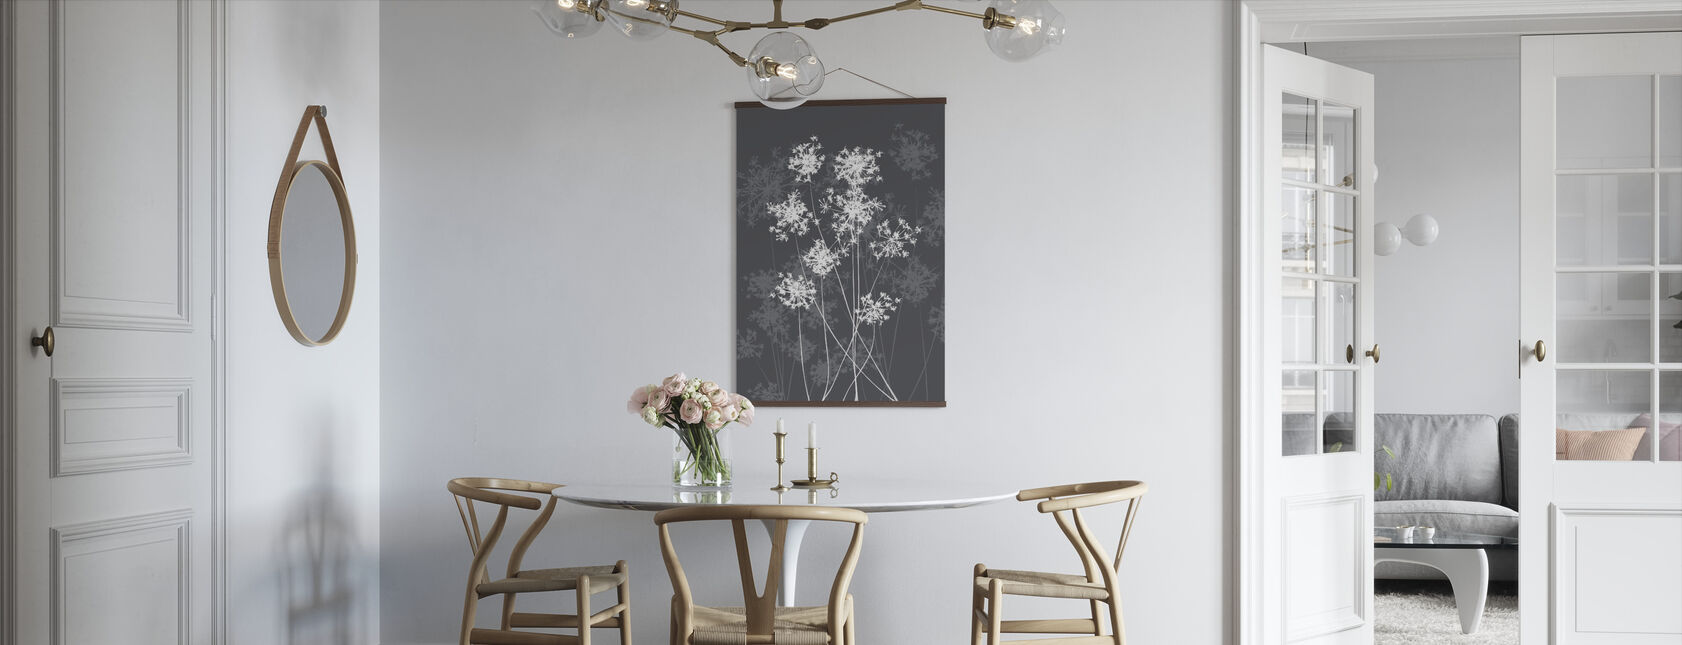 Dandelions - Grey - Poster - Kitchen